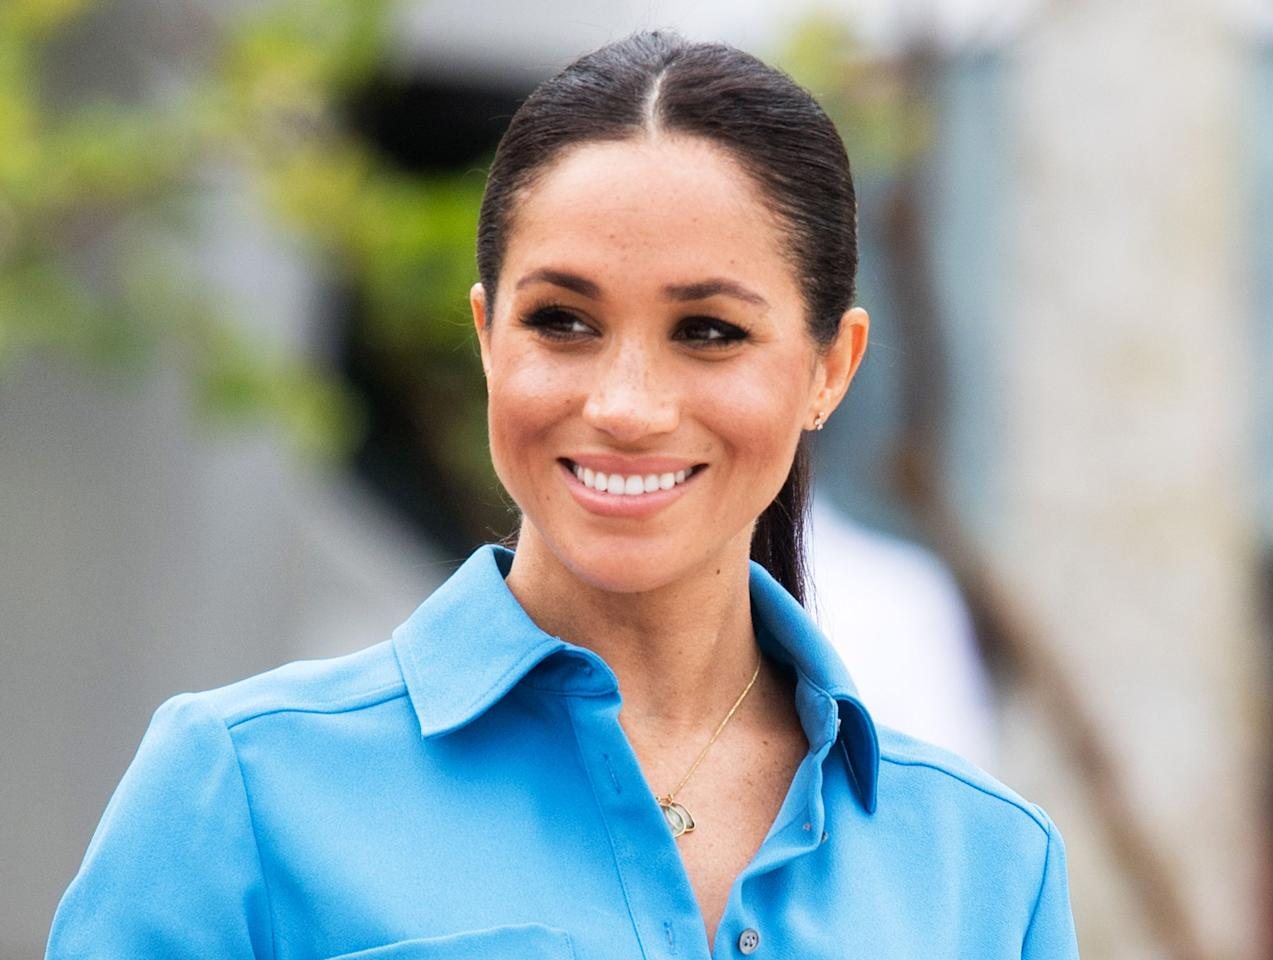 """<p>Since Meghan Markle made her <a href=""""https://www.marieclaire.com/celebrity/news/a29669/prince-harry-and-meghan-markle-break-royal-protocol-holding-hands/"""" target=""""_blank"""">first appearance with Prince Harry</a> in September 2017, royal fans have been obsessively tracking her <a href=""""https://www.marieclaire.com/fashion/a25691977/meghan-markle-favorite-jewelry-brands/"""" target=""""_blank"""">favorite brands</a> and designers. (Remember when she put <a href=""""https://www.marieclaire.com/fashion/a22823519/meghan-markle-strathberry-bag-nordstrom/"""" target=""""_blank"""">Scottish handbag brand Strathberry</a> on the map? Or made <a href=""""https://www.marieclaire.com/fashion/a28423633/meghan-markle-mother-jeans-nordstrom-anniversary-sale-2019/"""" target=""""_blank"""">Mother jeans</a> a brand nobody could stop talking about?) In honor of the Duchess of Sussex's 38th birthday on August 4, we're compiling the ultimate Meghan Markle birthday wish list filled with the brands she's been spotted in repeatedly both in her pre-royal life and currently. Consider it our gift to you, Meg. <br></p>"""